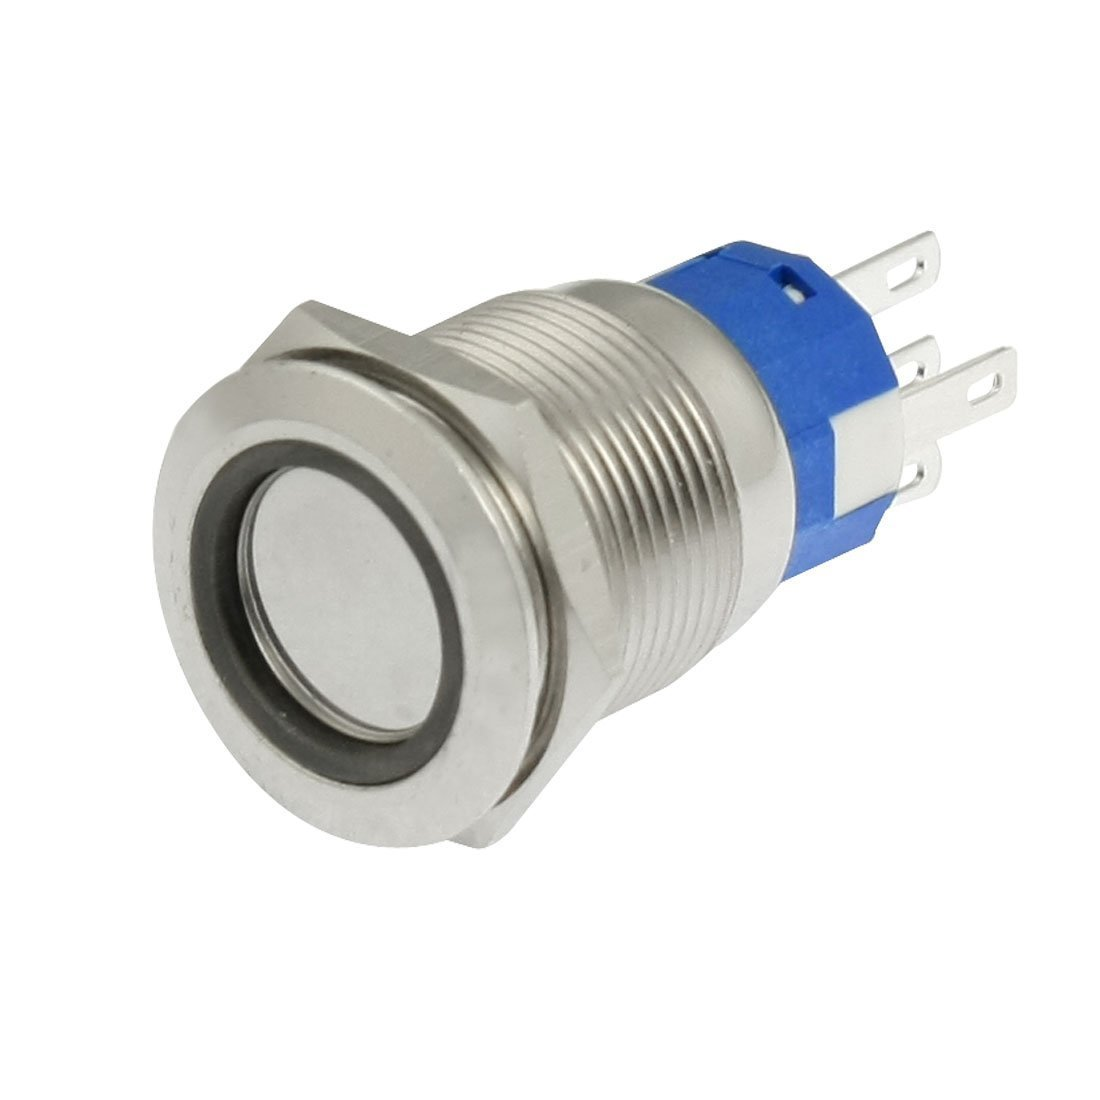 Baomain DC 24V Blue LED 19mm Stainless Steel Latching Push Button Switch